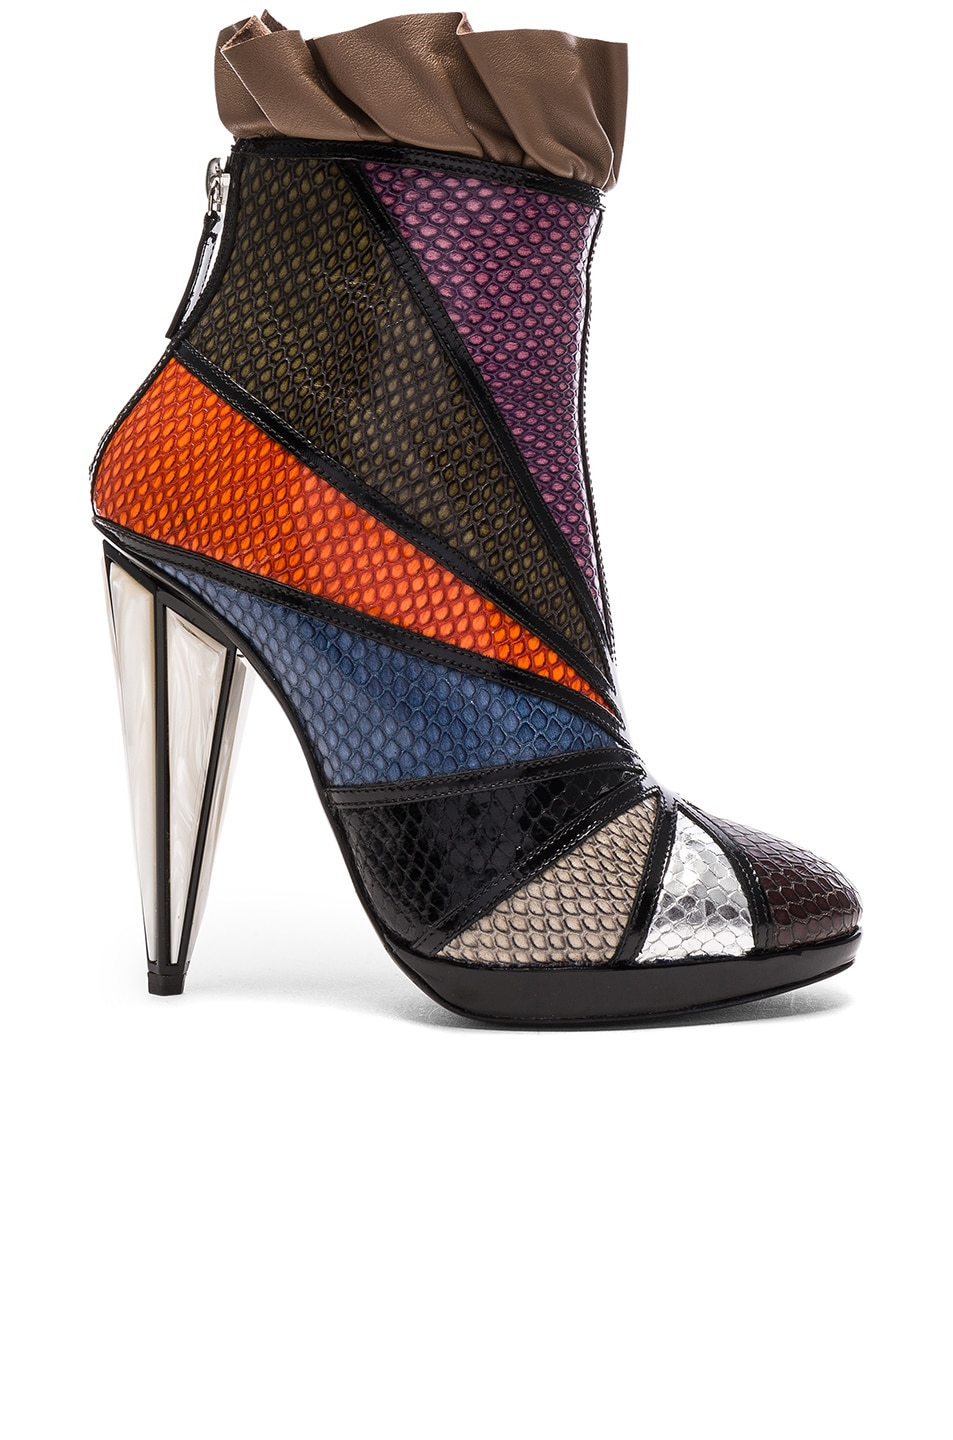 Image 1 of Rodarte Embossed Metallic Leather Ankle Booties in Multi